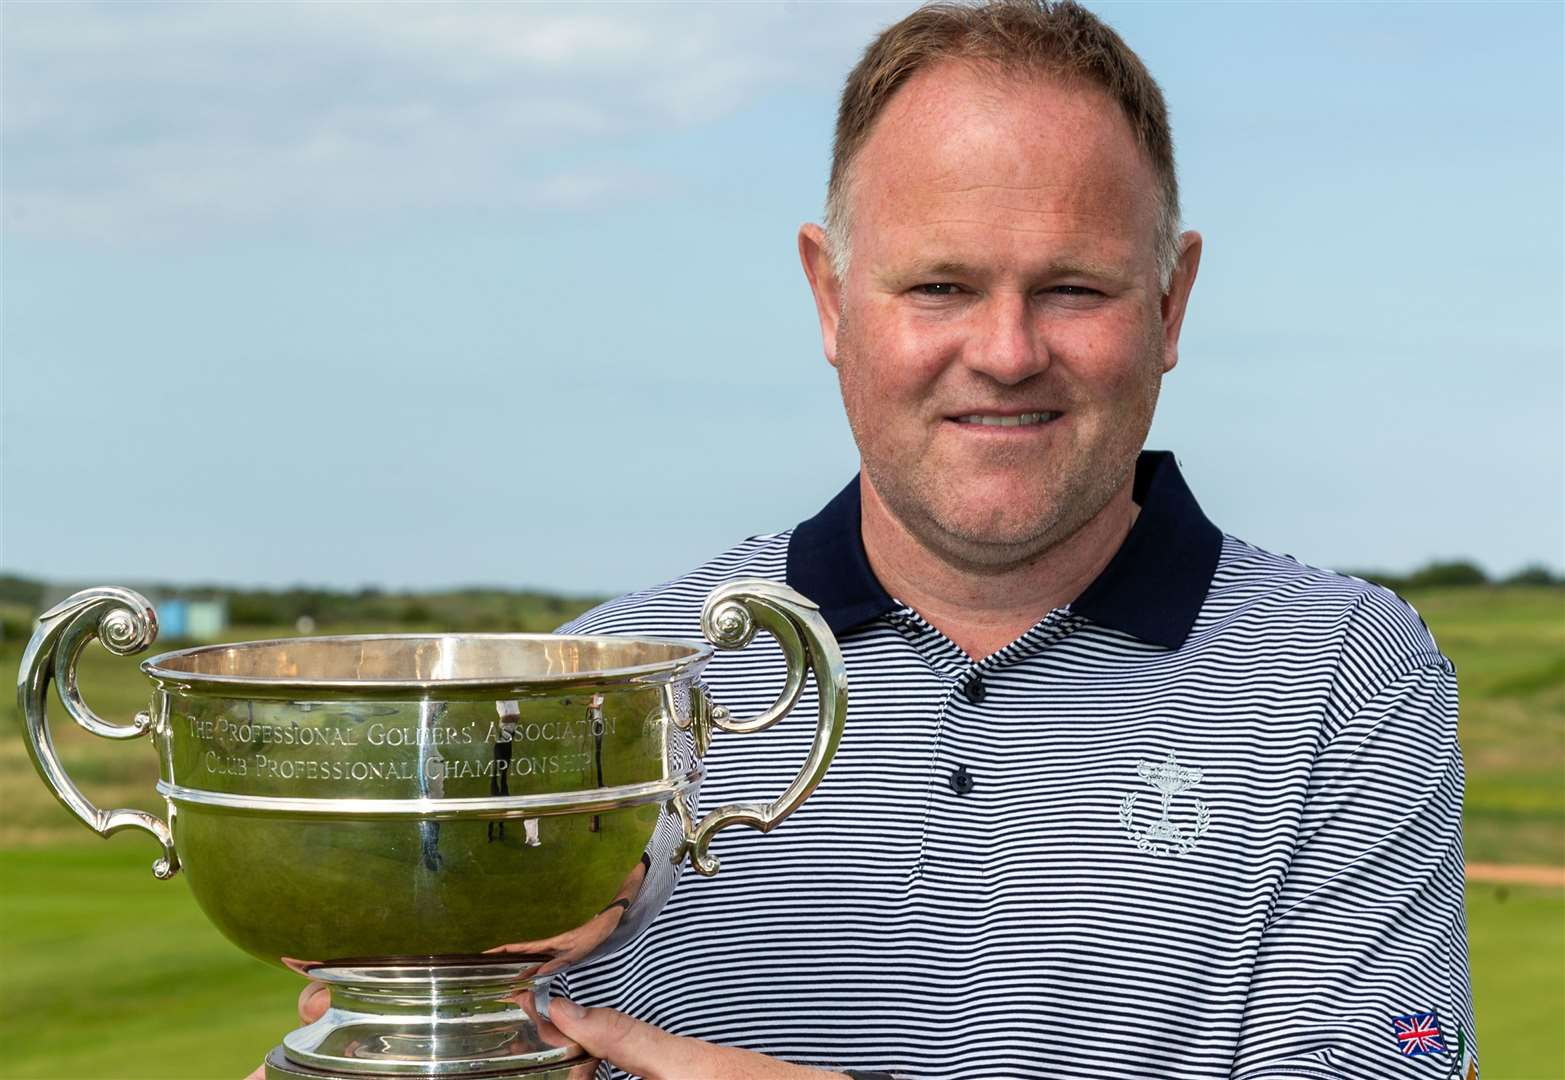 Scottish golfing ace Forysth finishes clear at Hunstanton